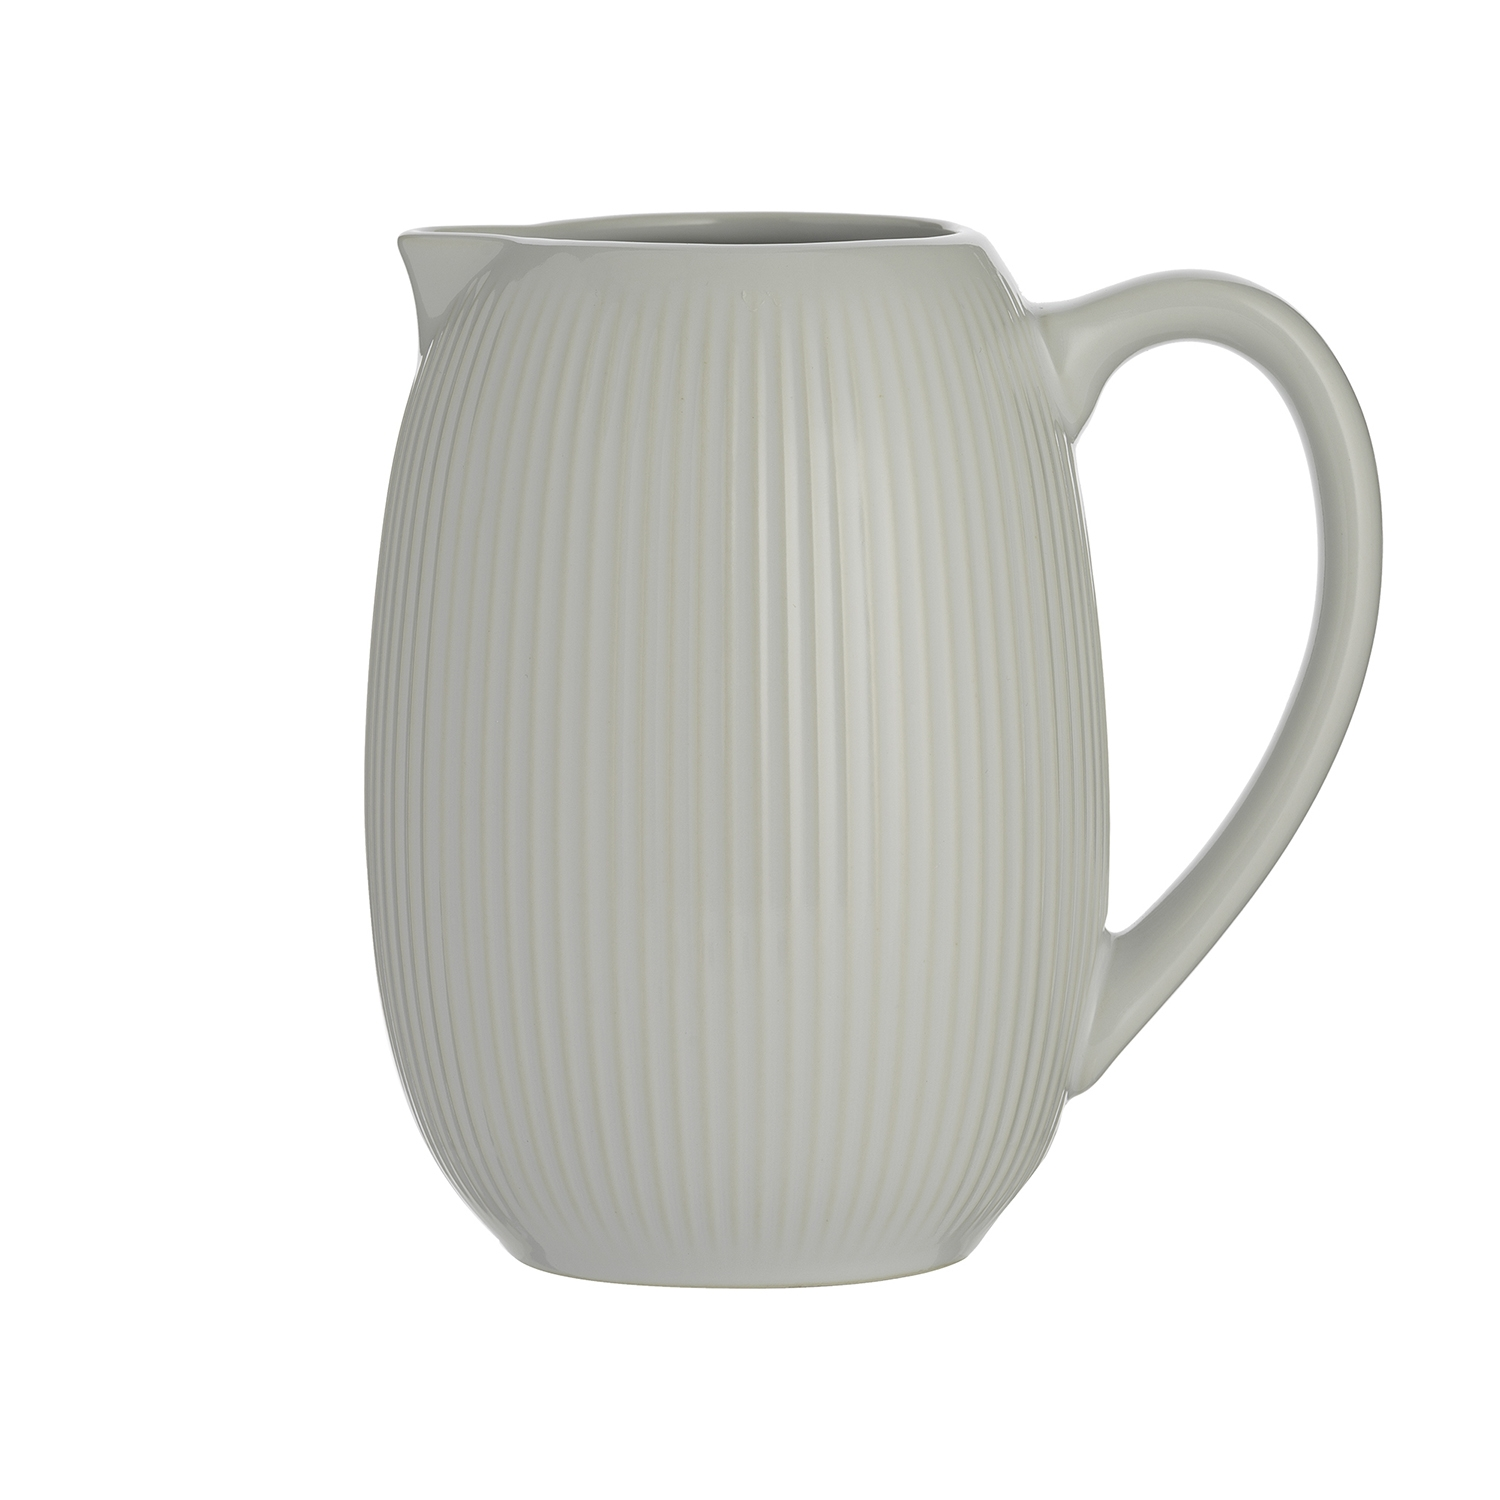 Image of LINEAR PITCHER JUG WHITE